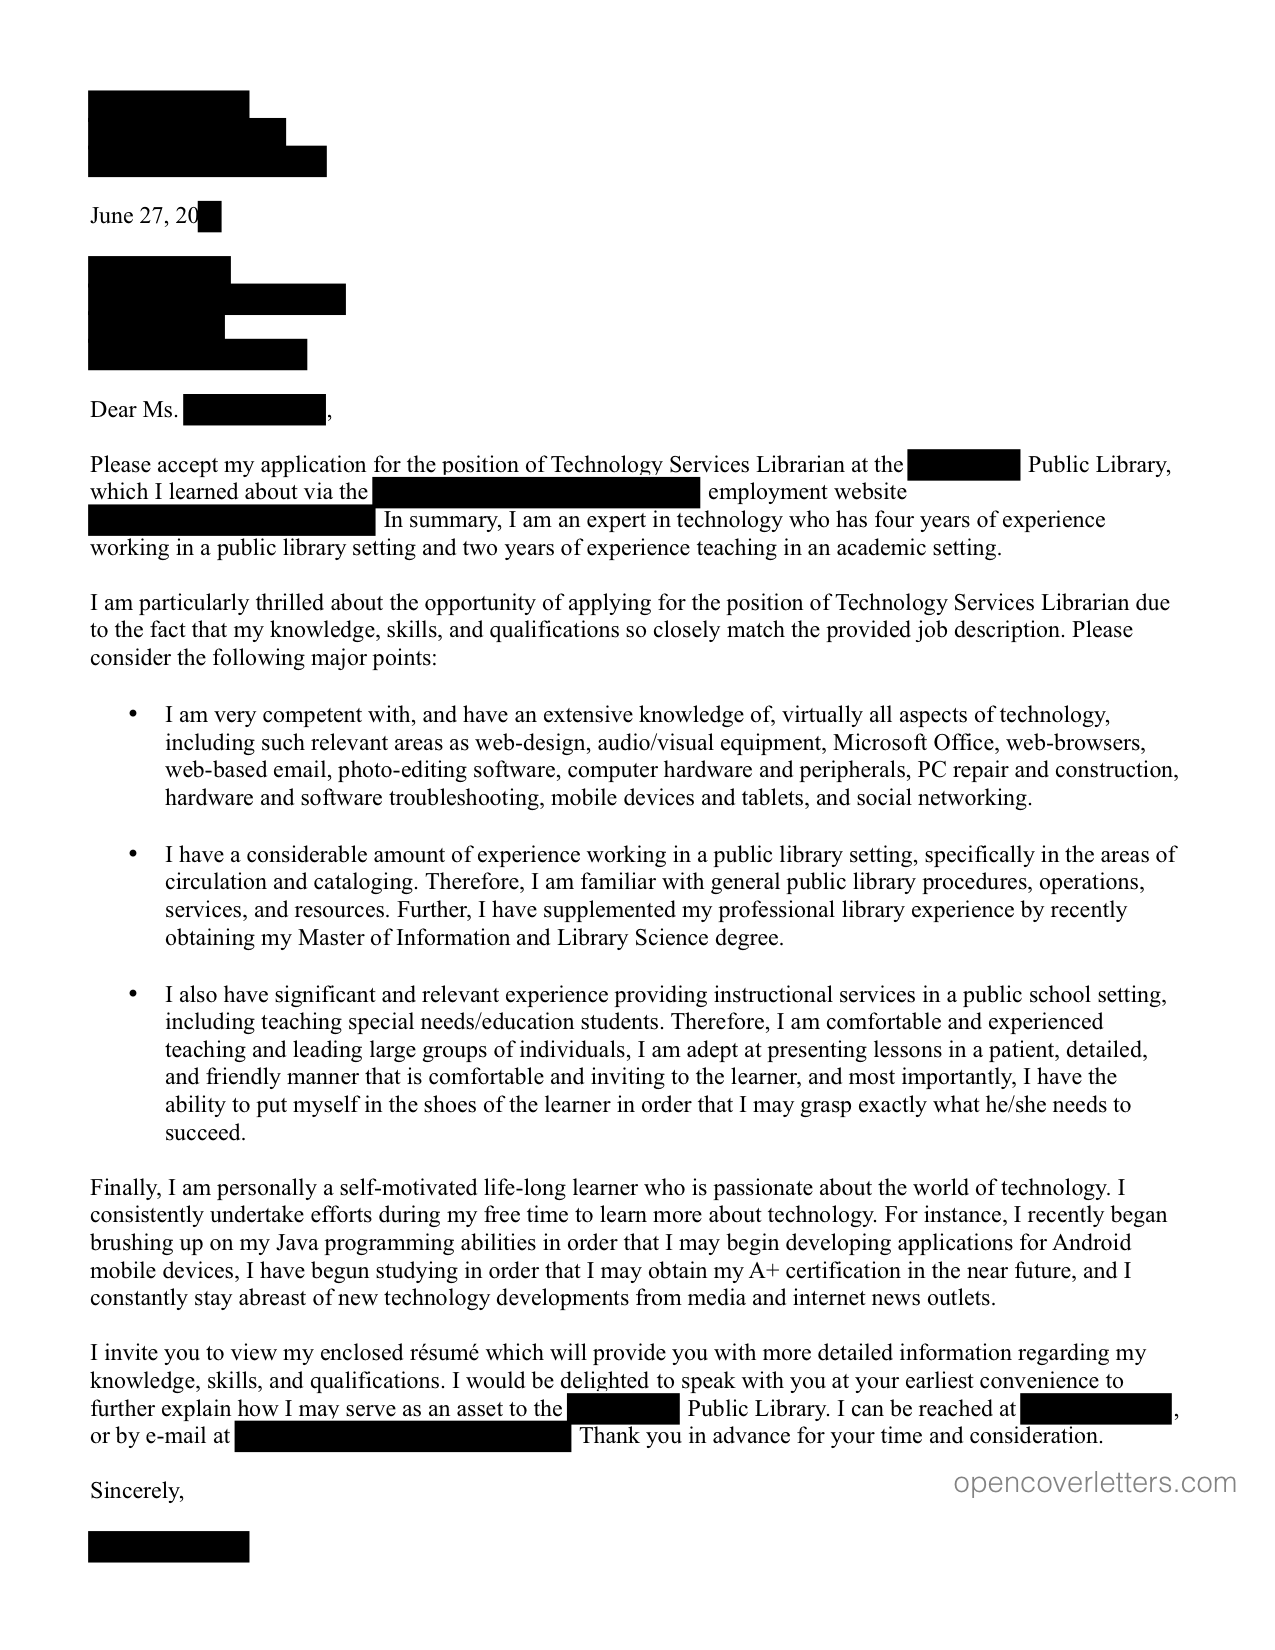 Charlie sheen had non disclosure for sex partners report for Test proctor cover letter